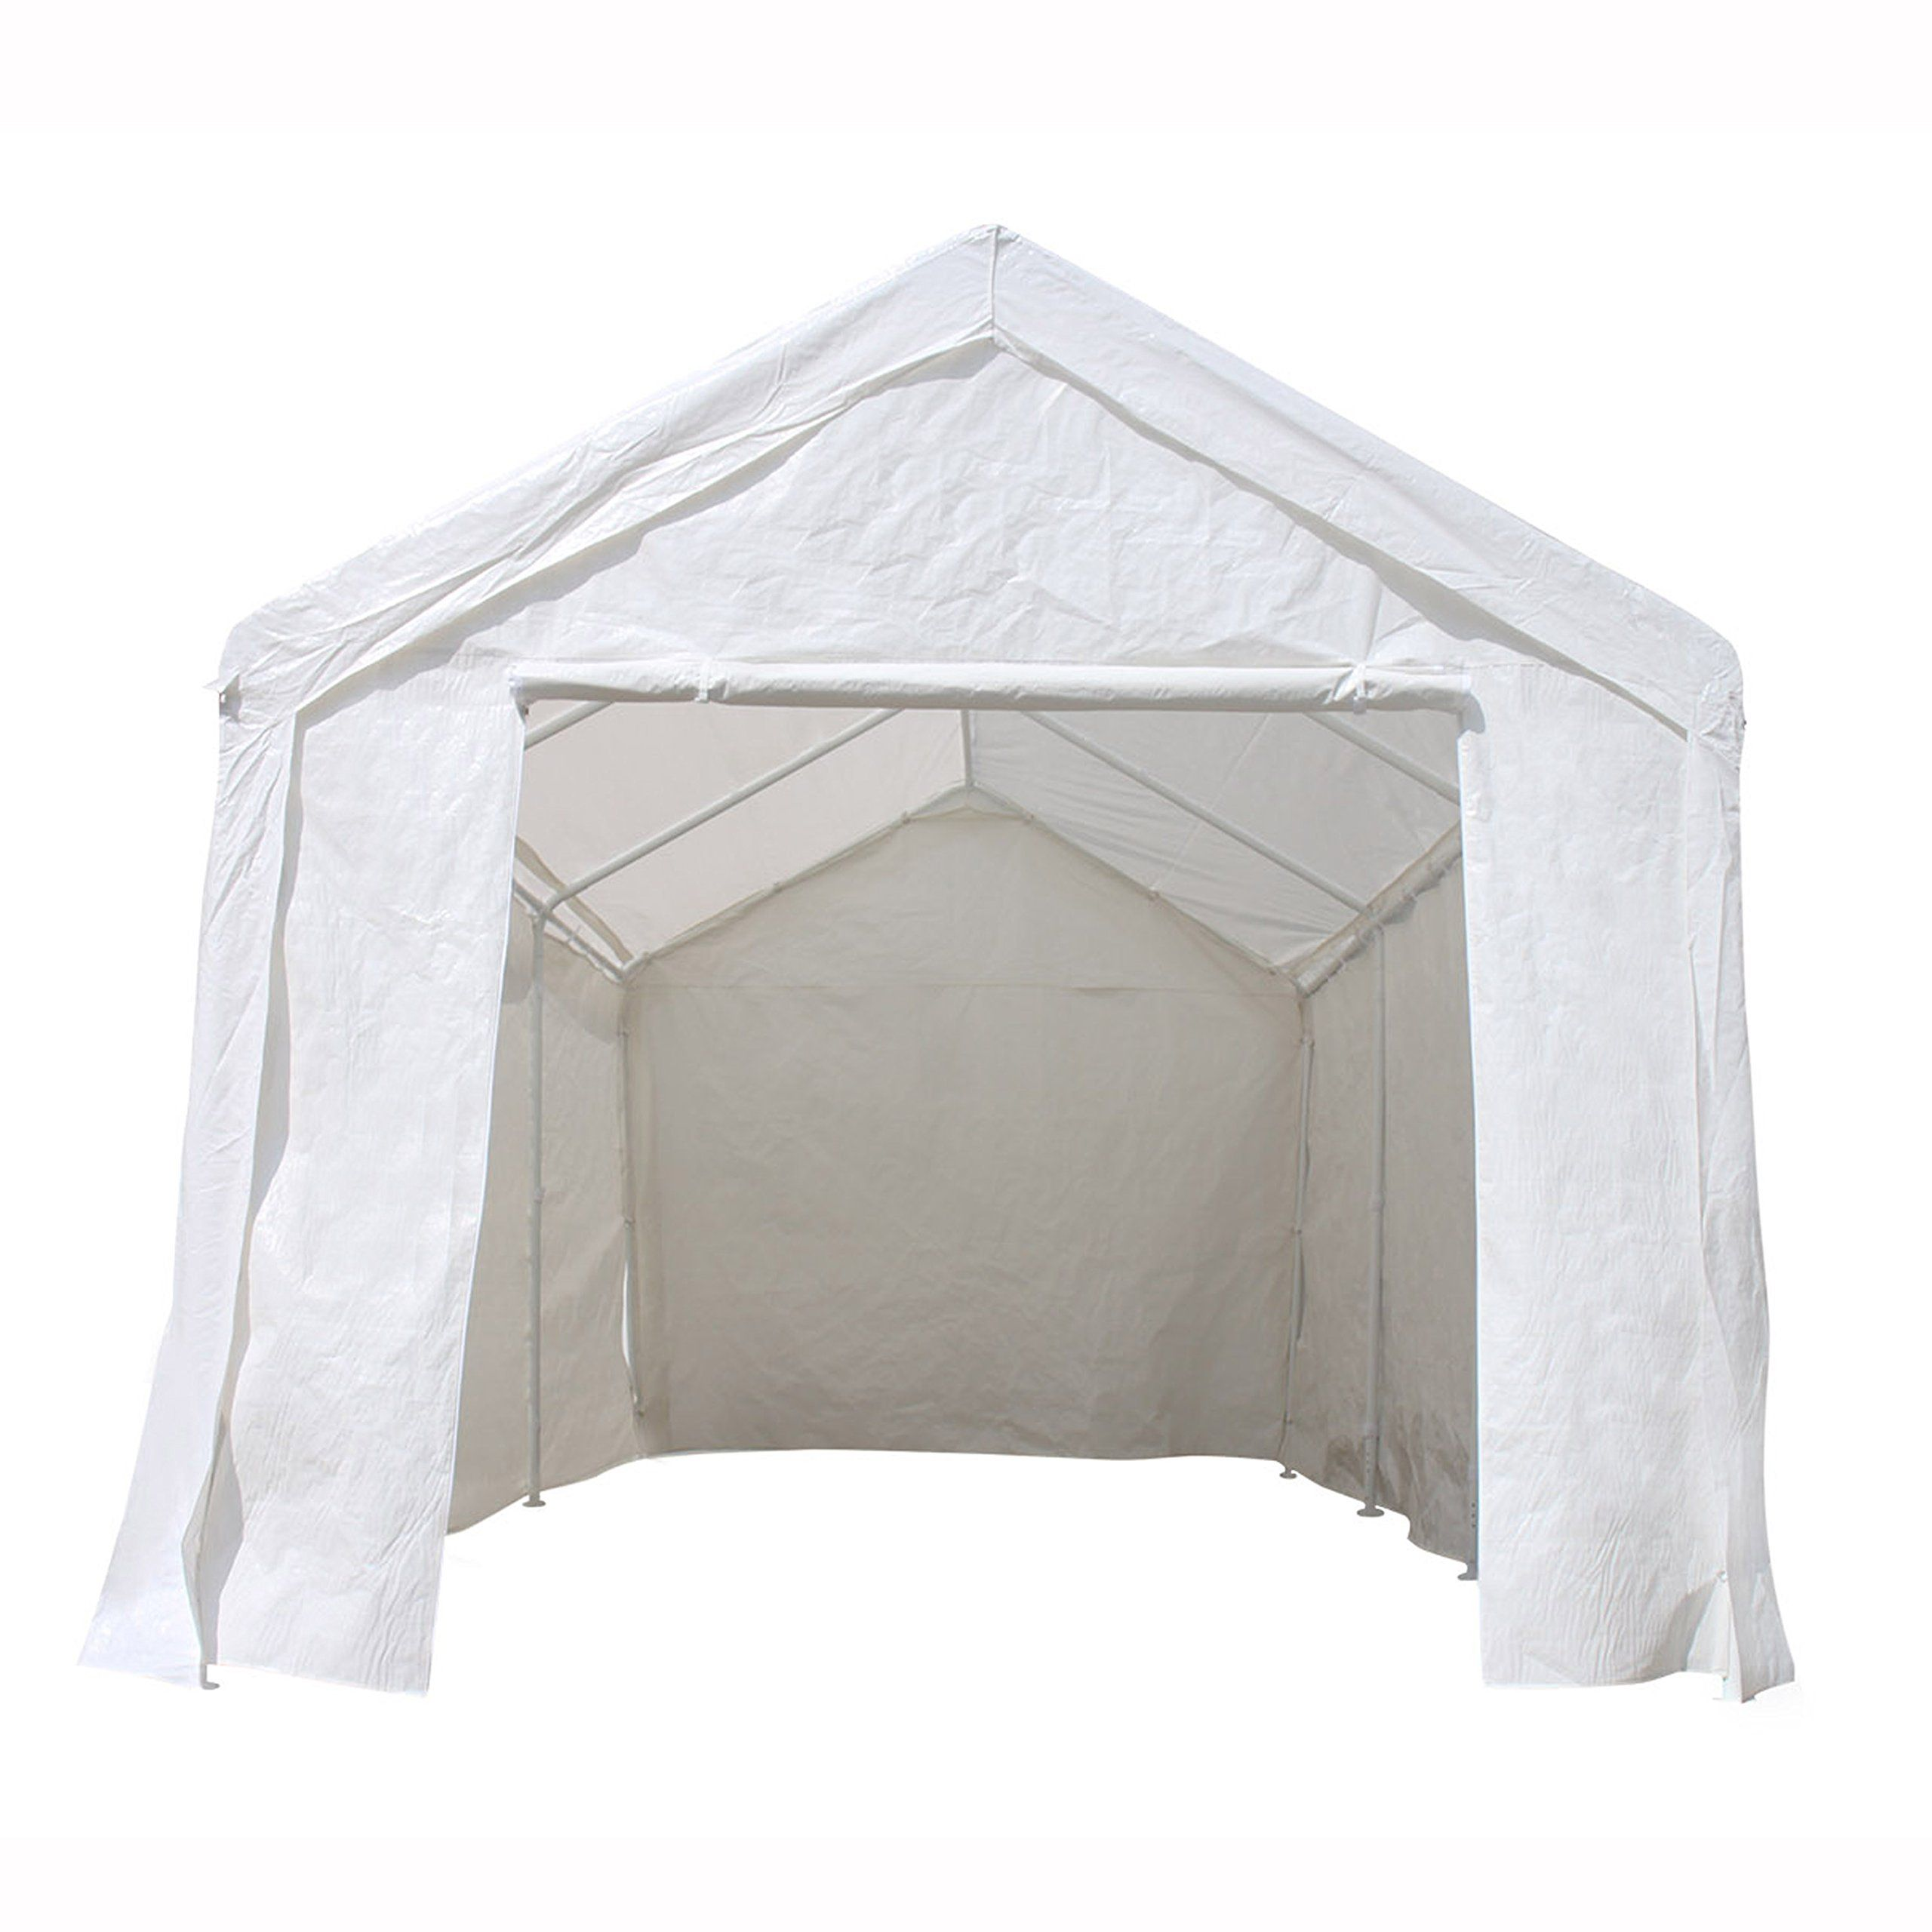 Aleko Cp1020wh Outdoor Event Carport Garage Canopy Tent Shelter Storage With Sidewalls 10 X 20 X 8 5 Feet White Carport Canopy Canopy Tent Garage Canopies